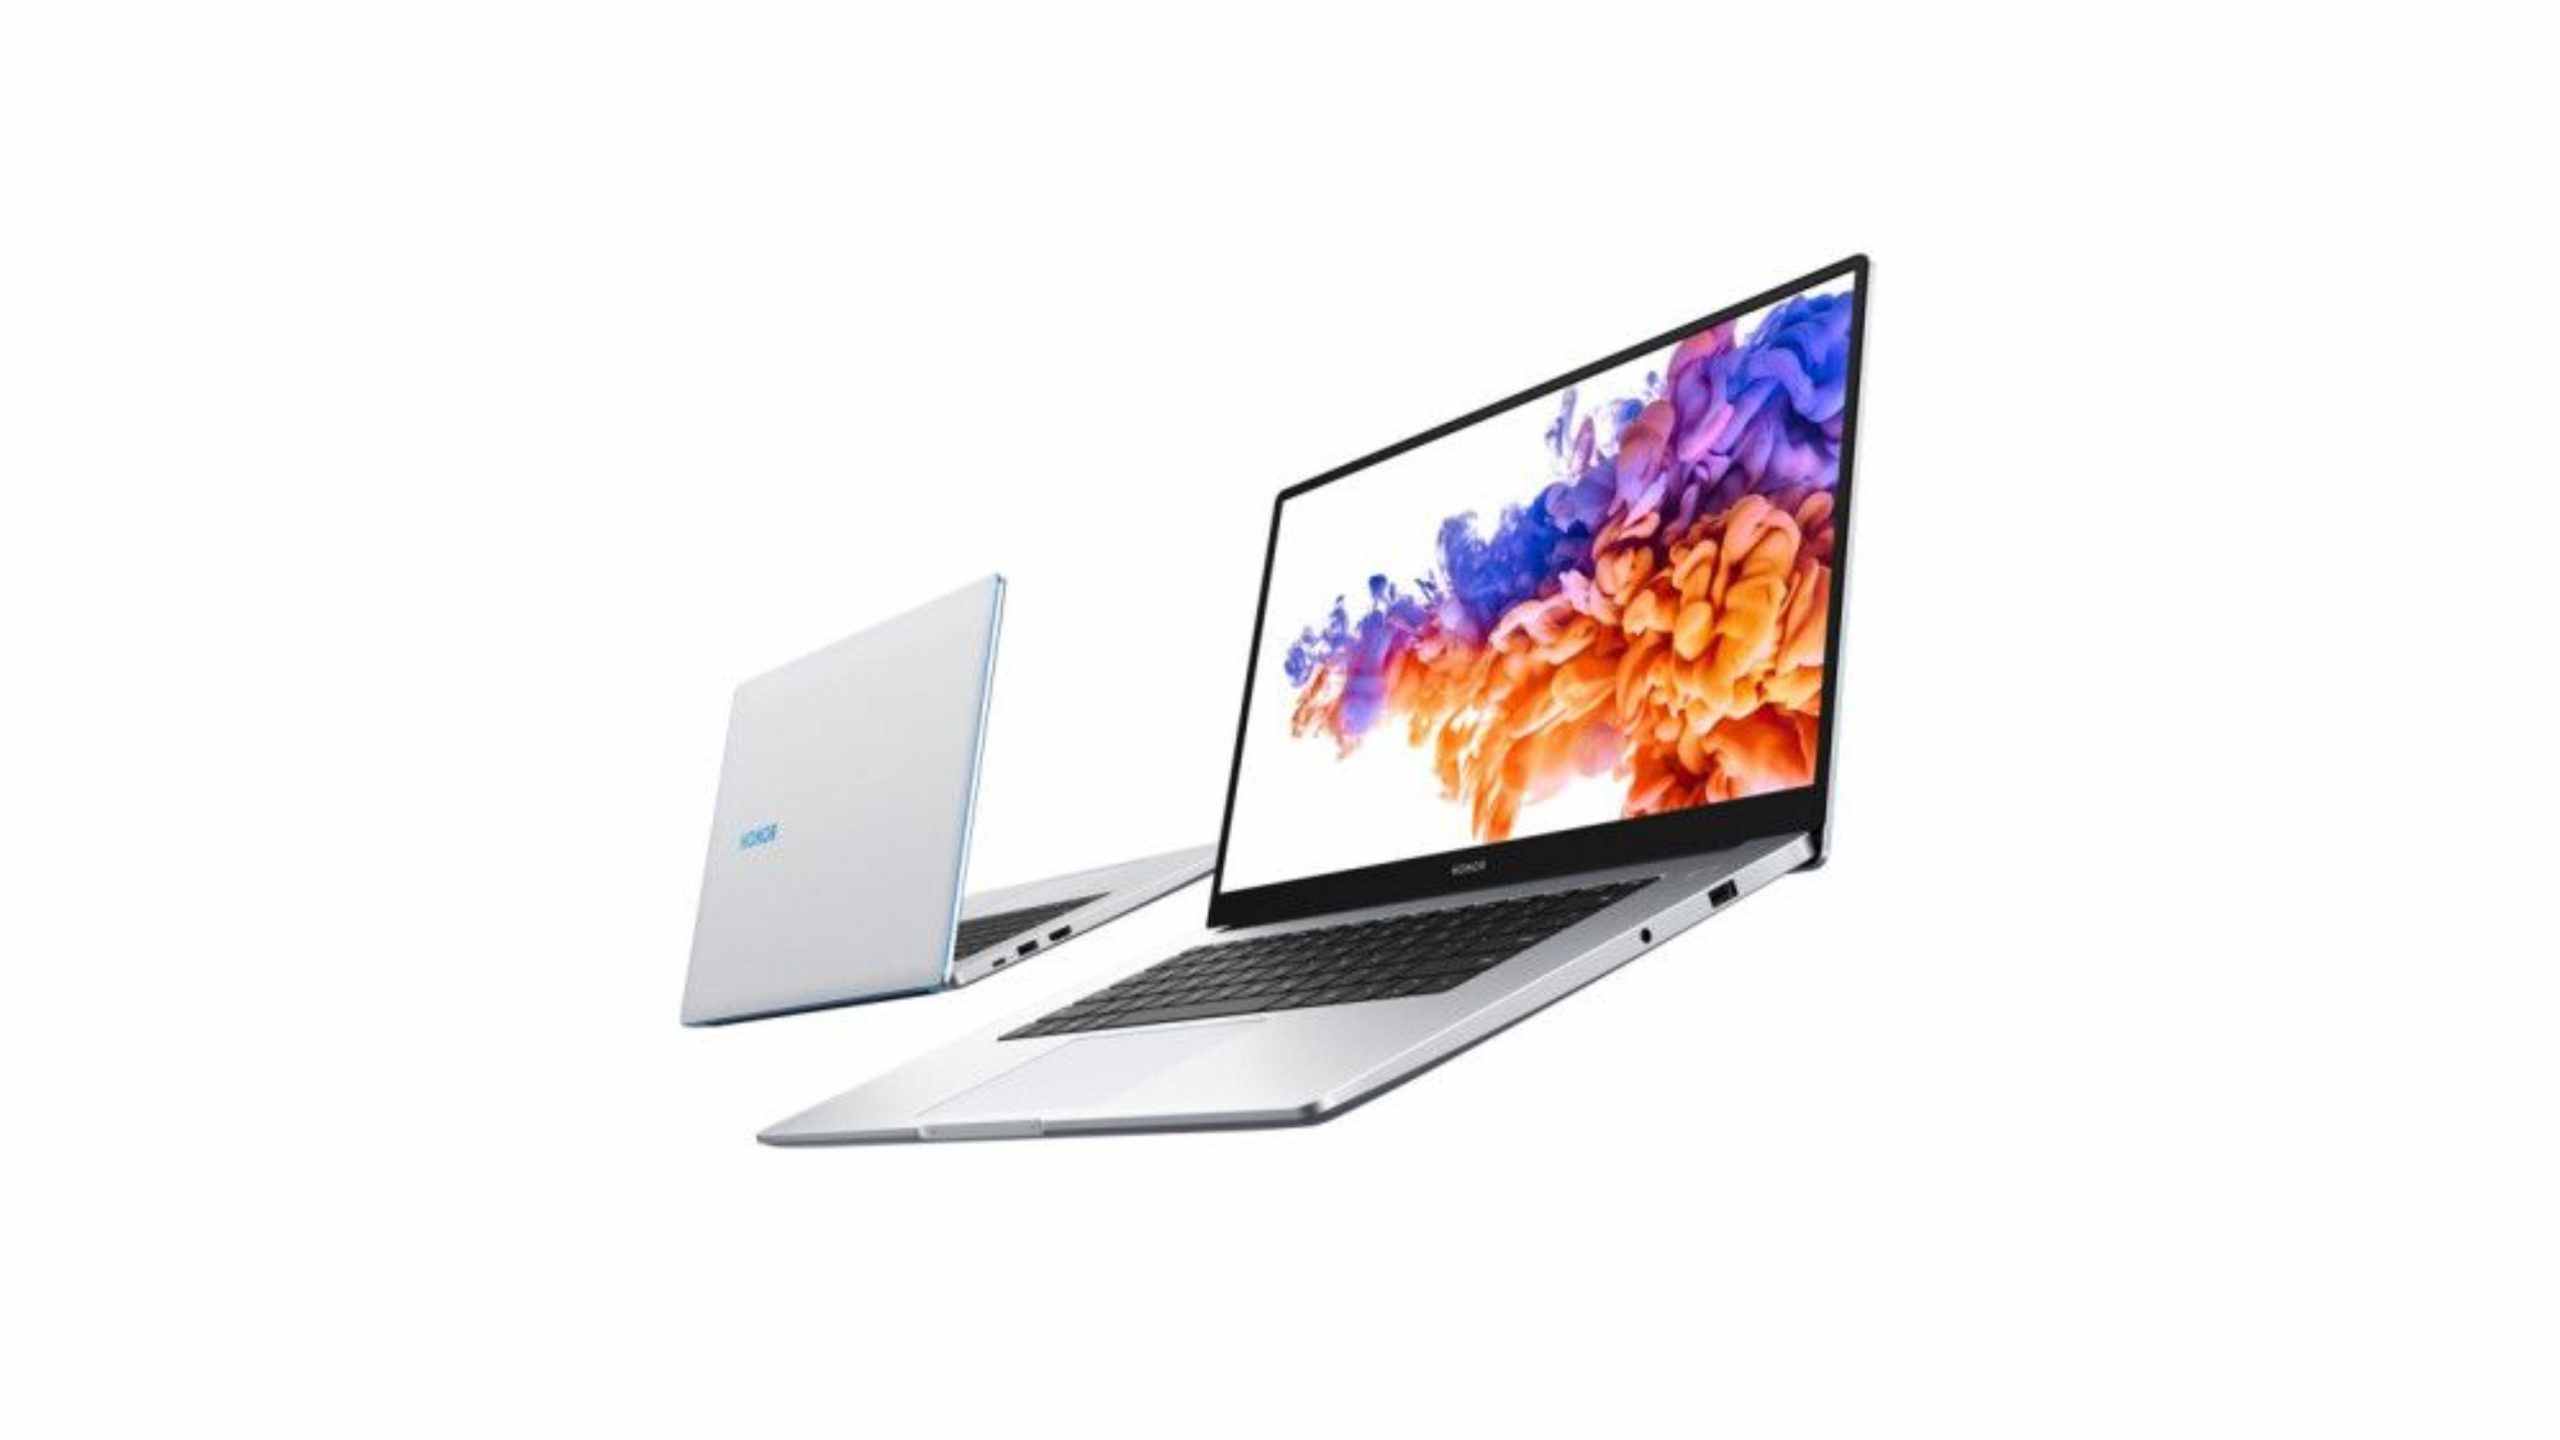 Honor to launch a newly designed MagicBook laptop with thin bezels: Report